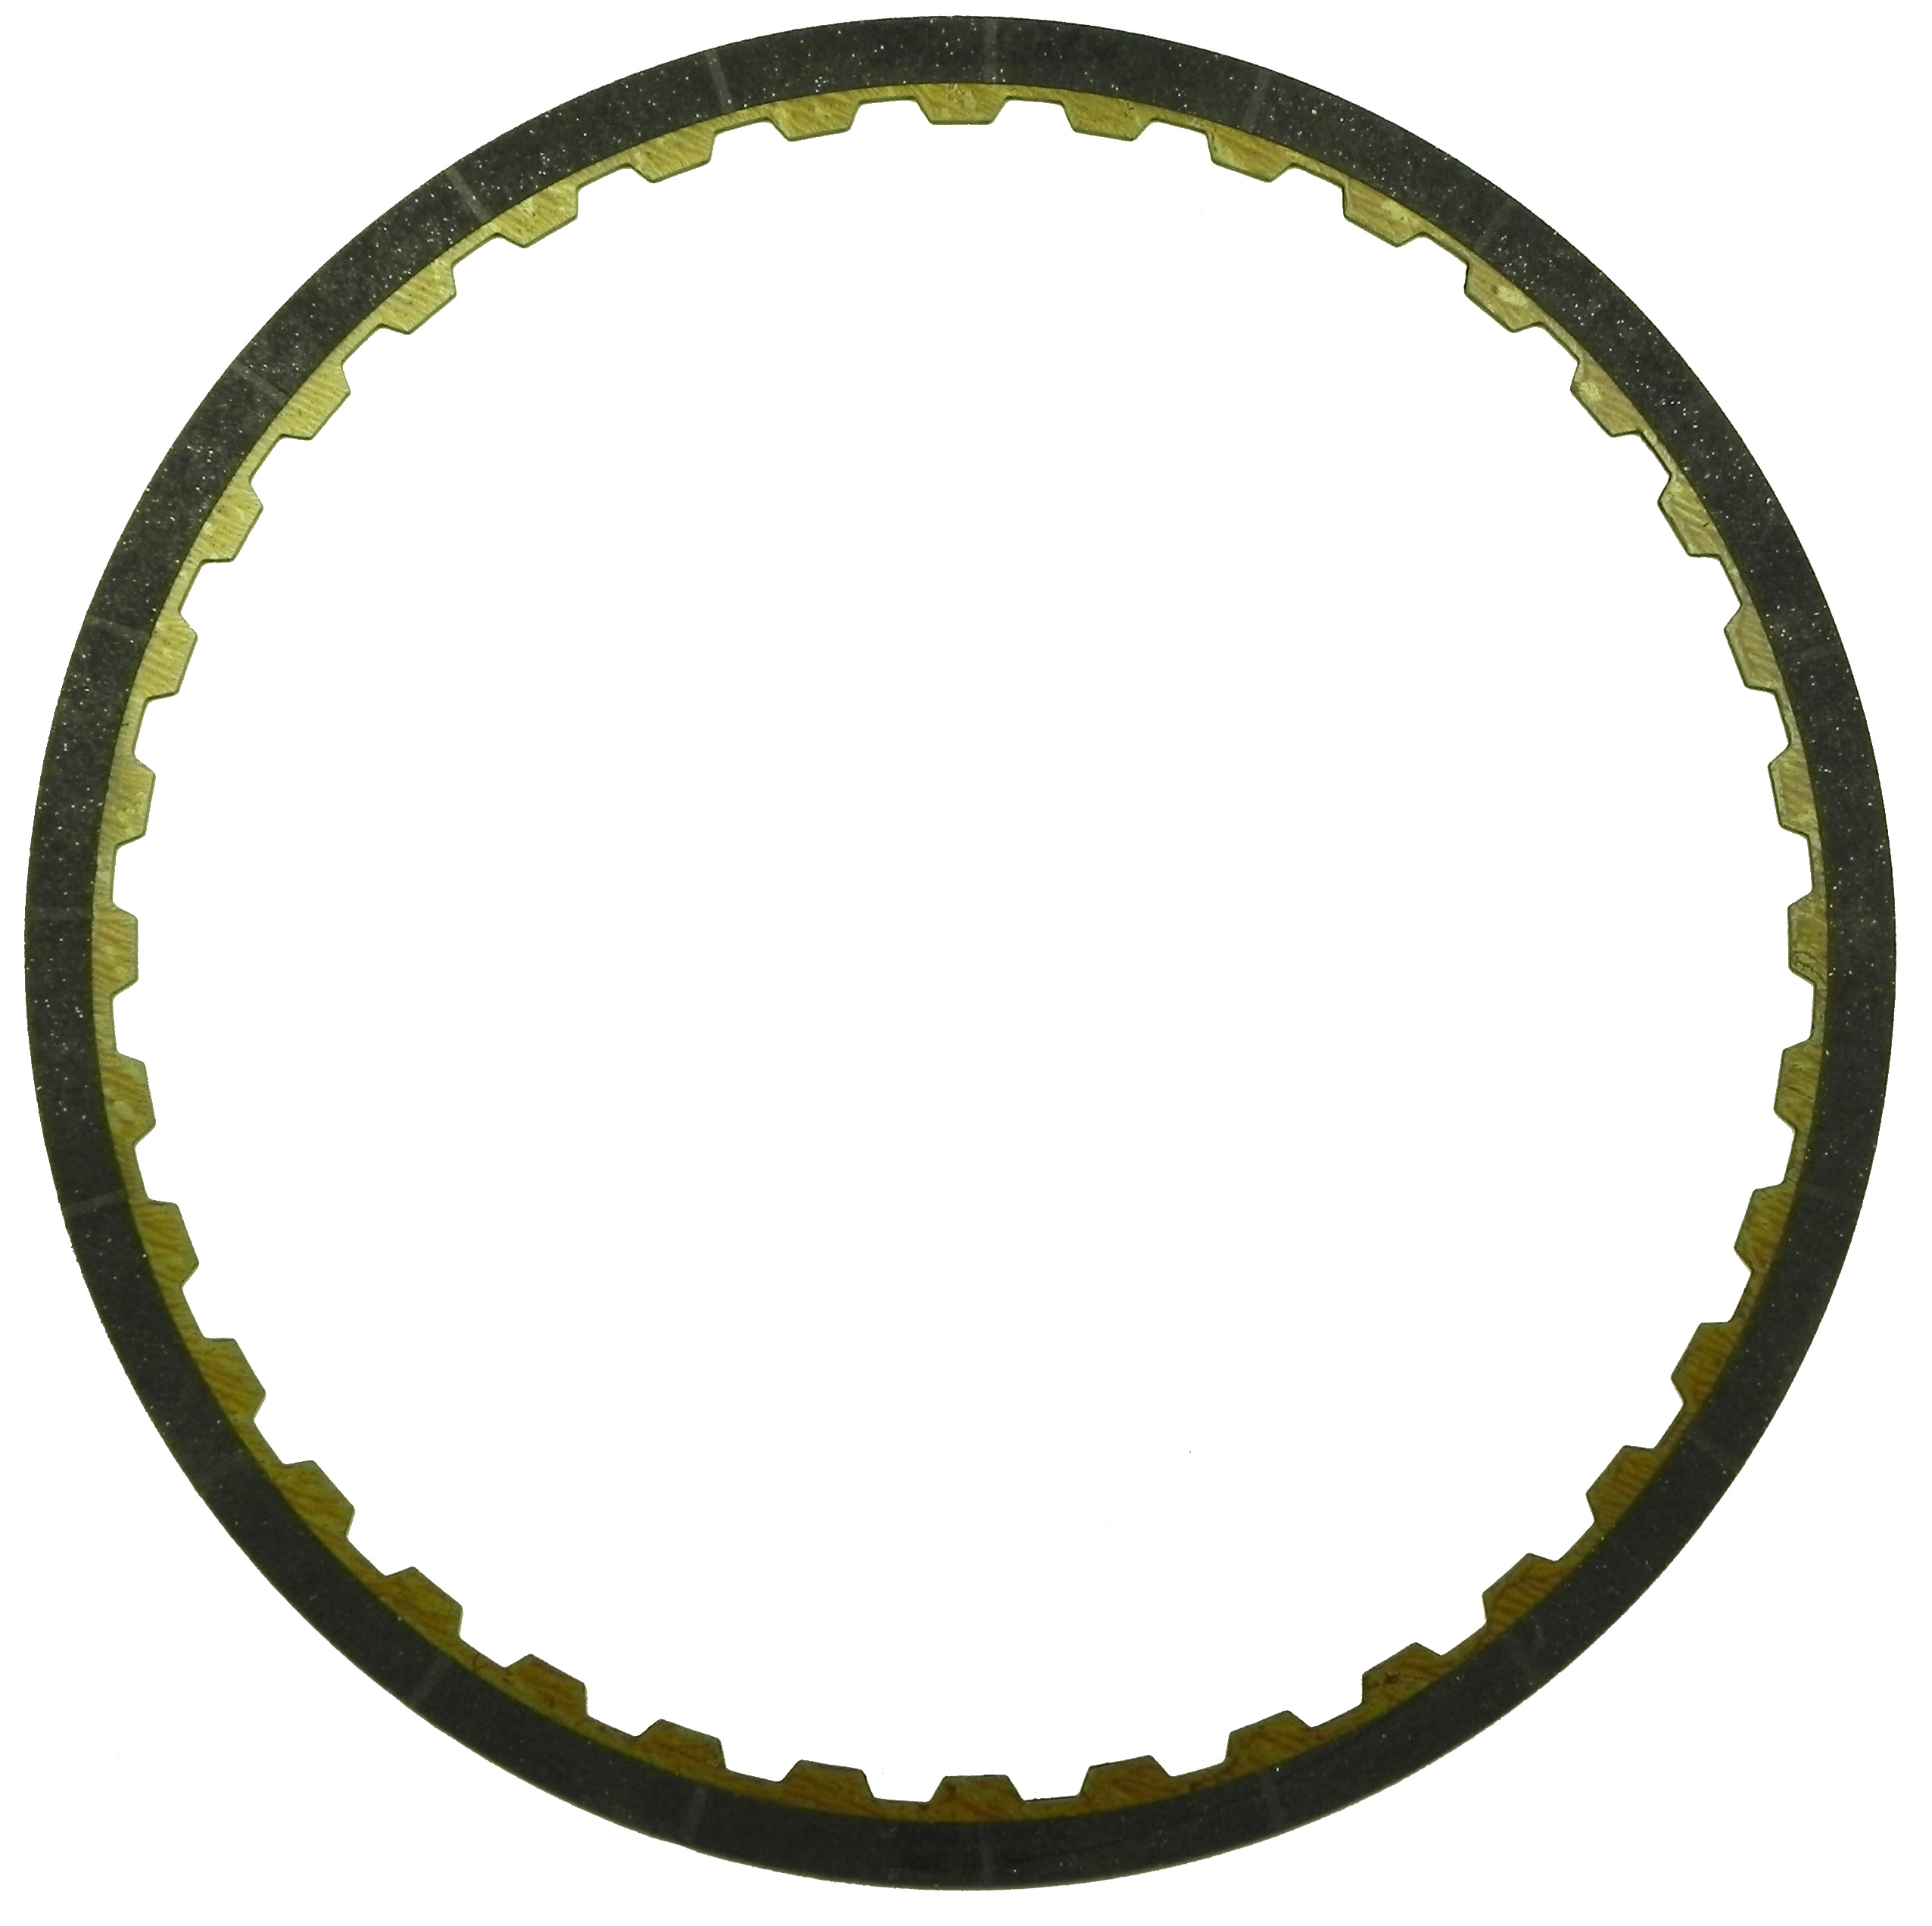 R560465 | 2007-ON Friction Clutch Plate High Energy C2 (4-5-6), Direct (Waved) High Energy